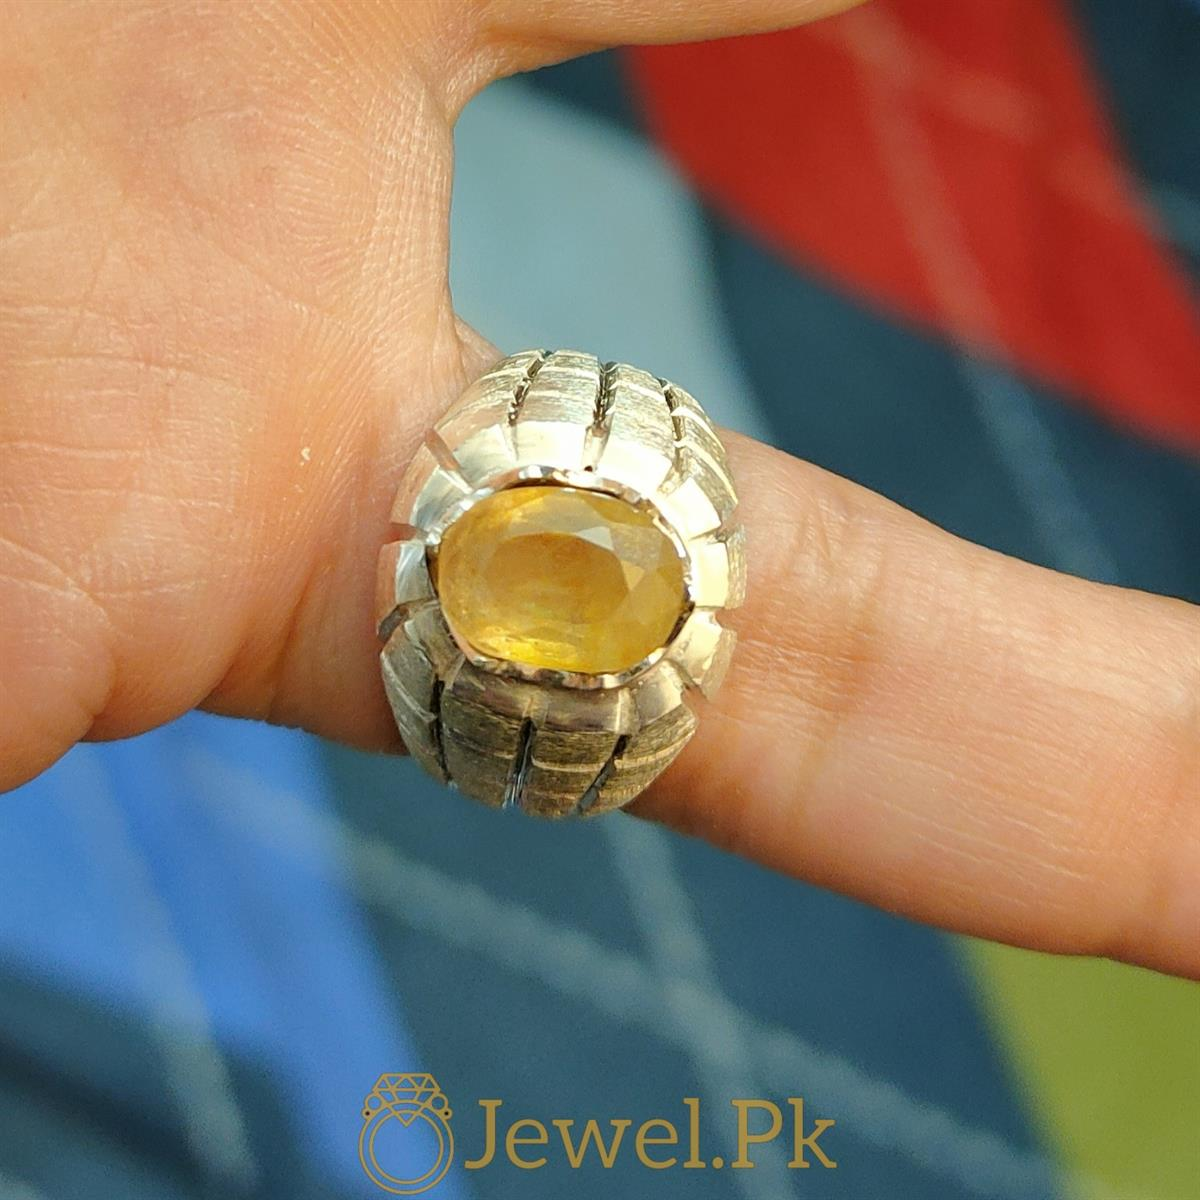 Natural Yellow Sapphire Ring Pukhraj Ring 4 natural gemstones pakistan + 925 silver jewelry online